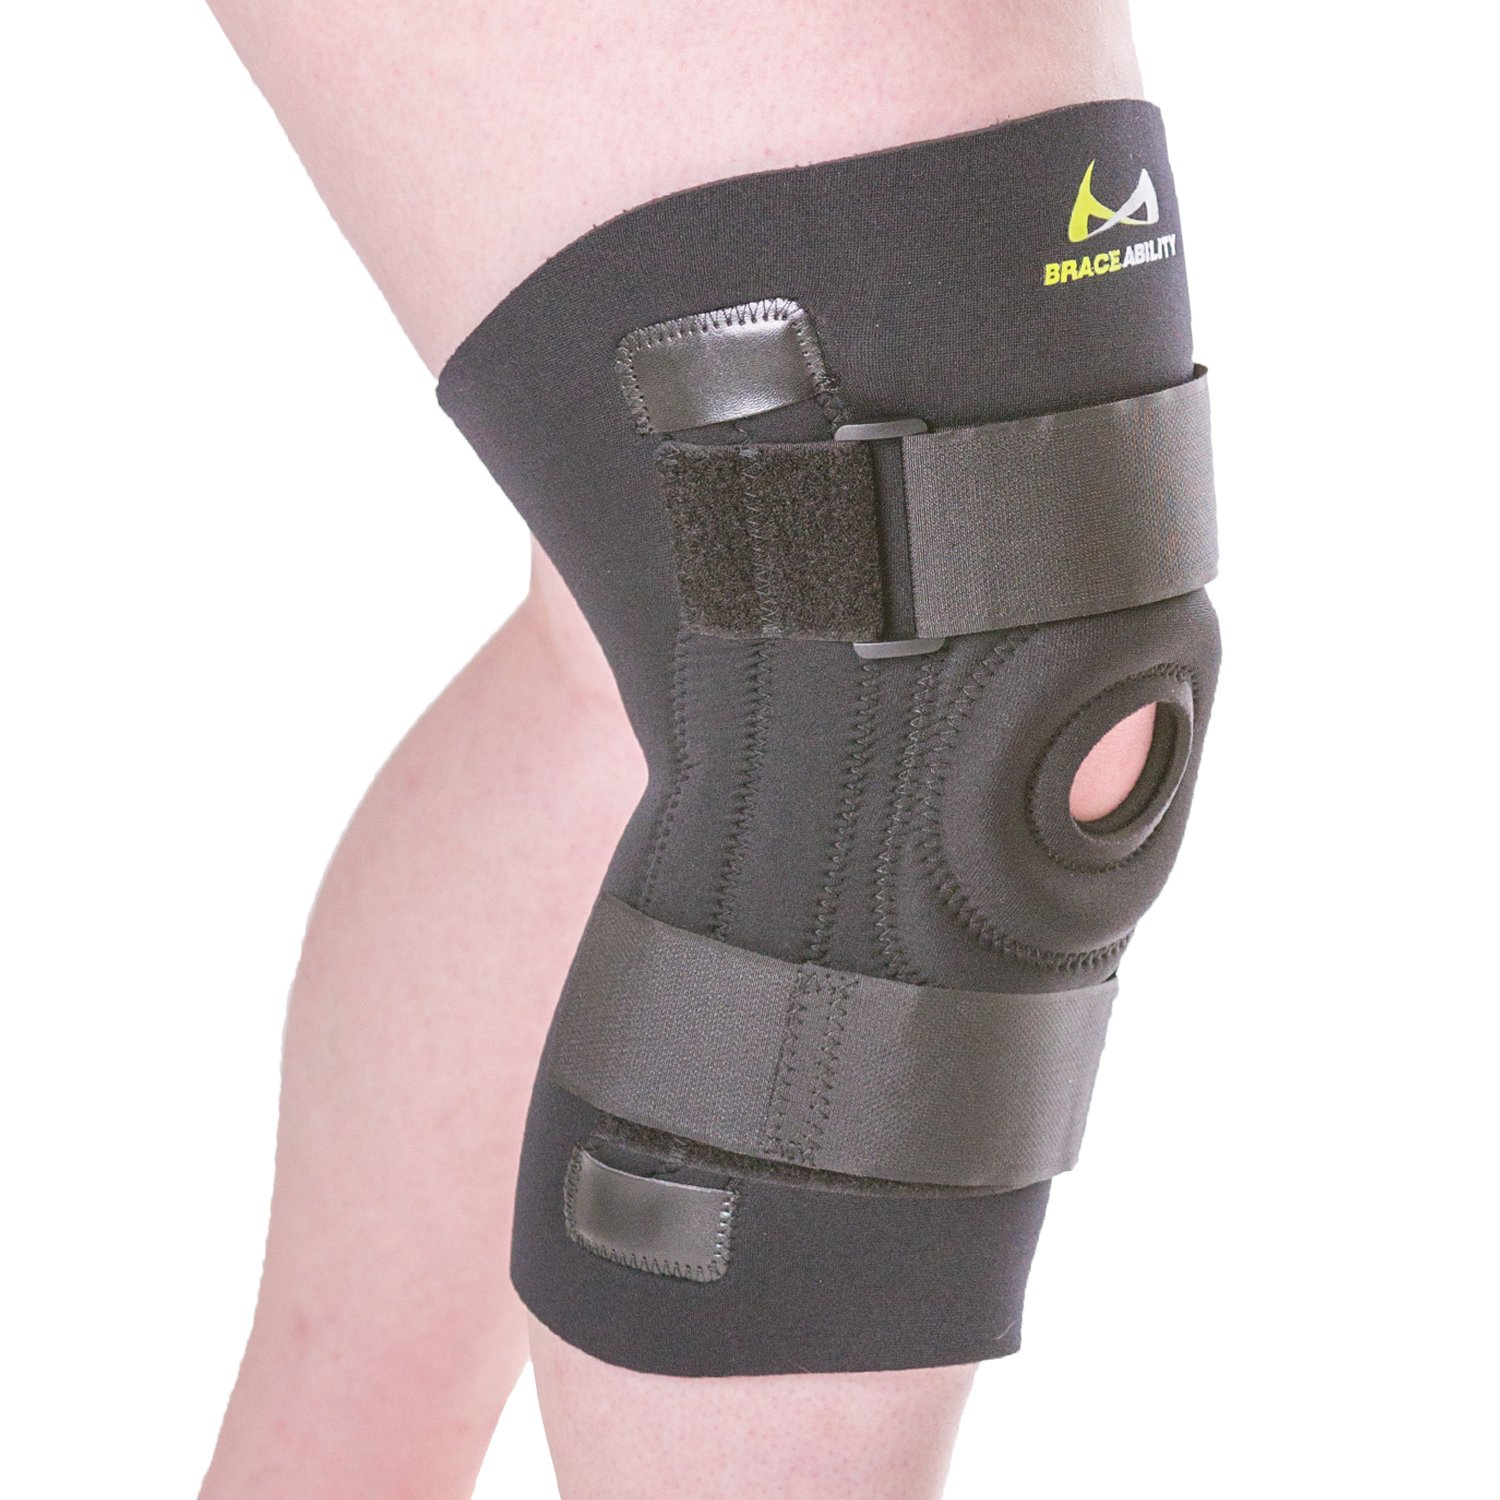 Knee Brace for Large Legs - 3XL, fits 31 circumference by BraceAbility   B00M4IVYZ6